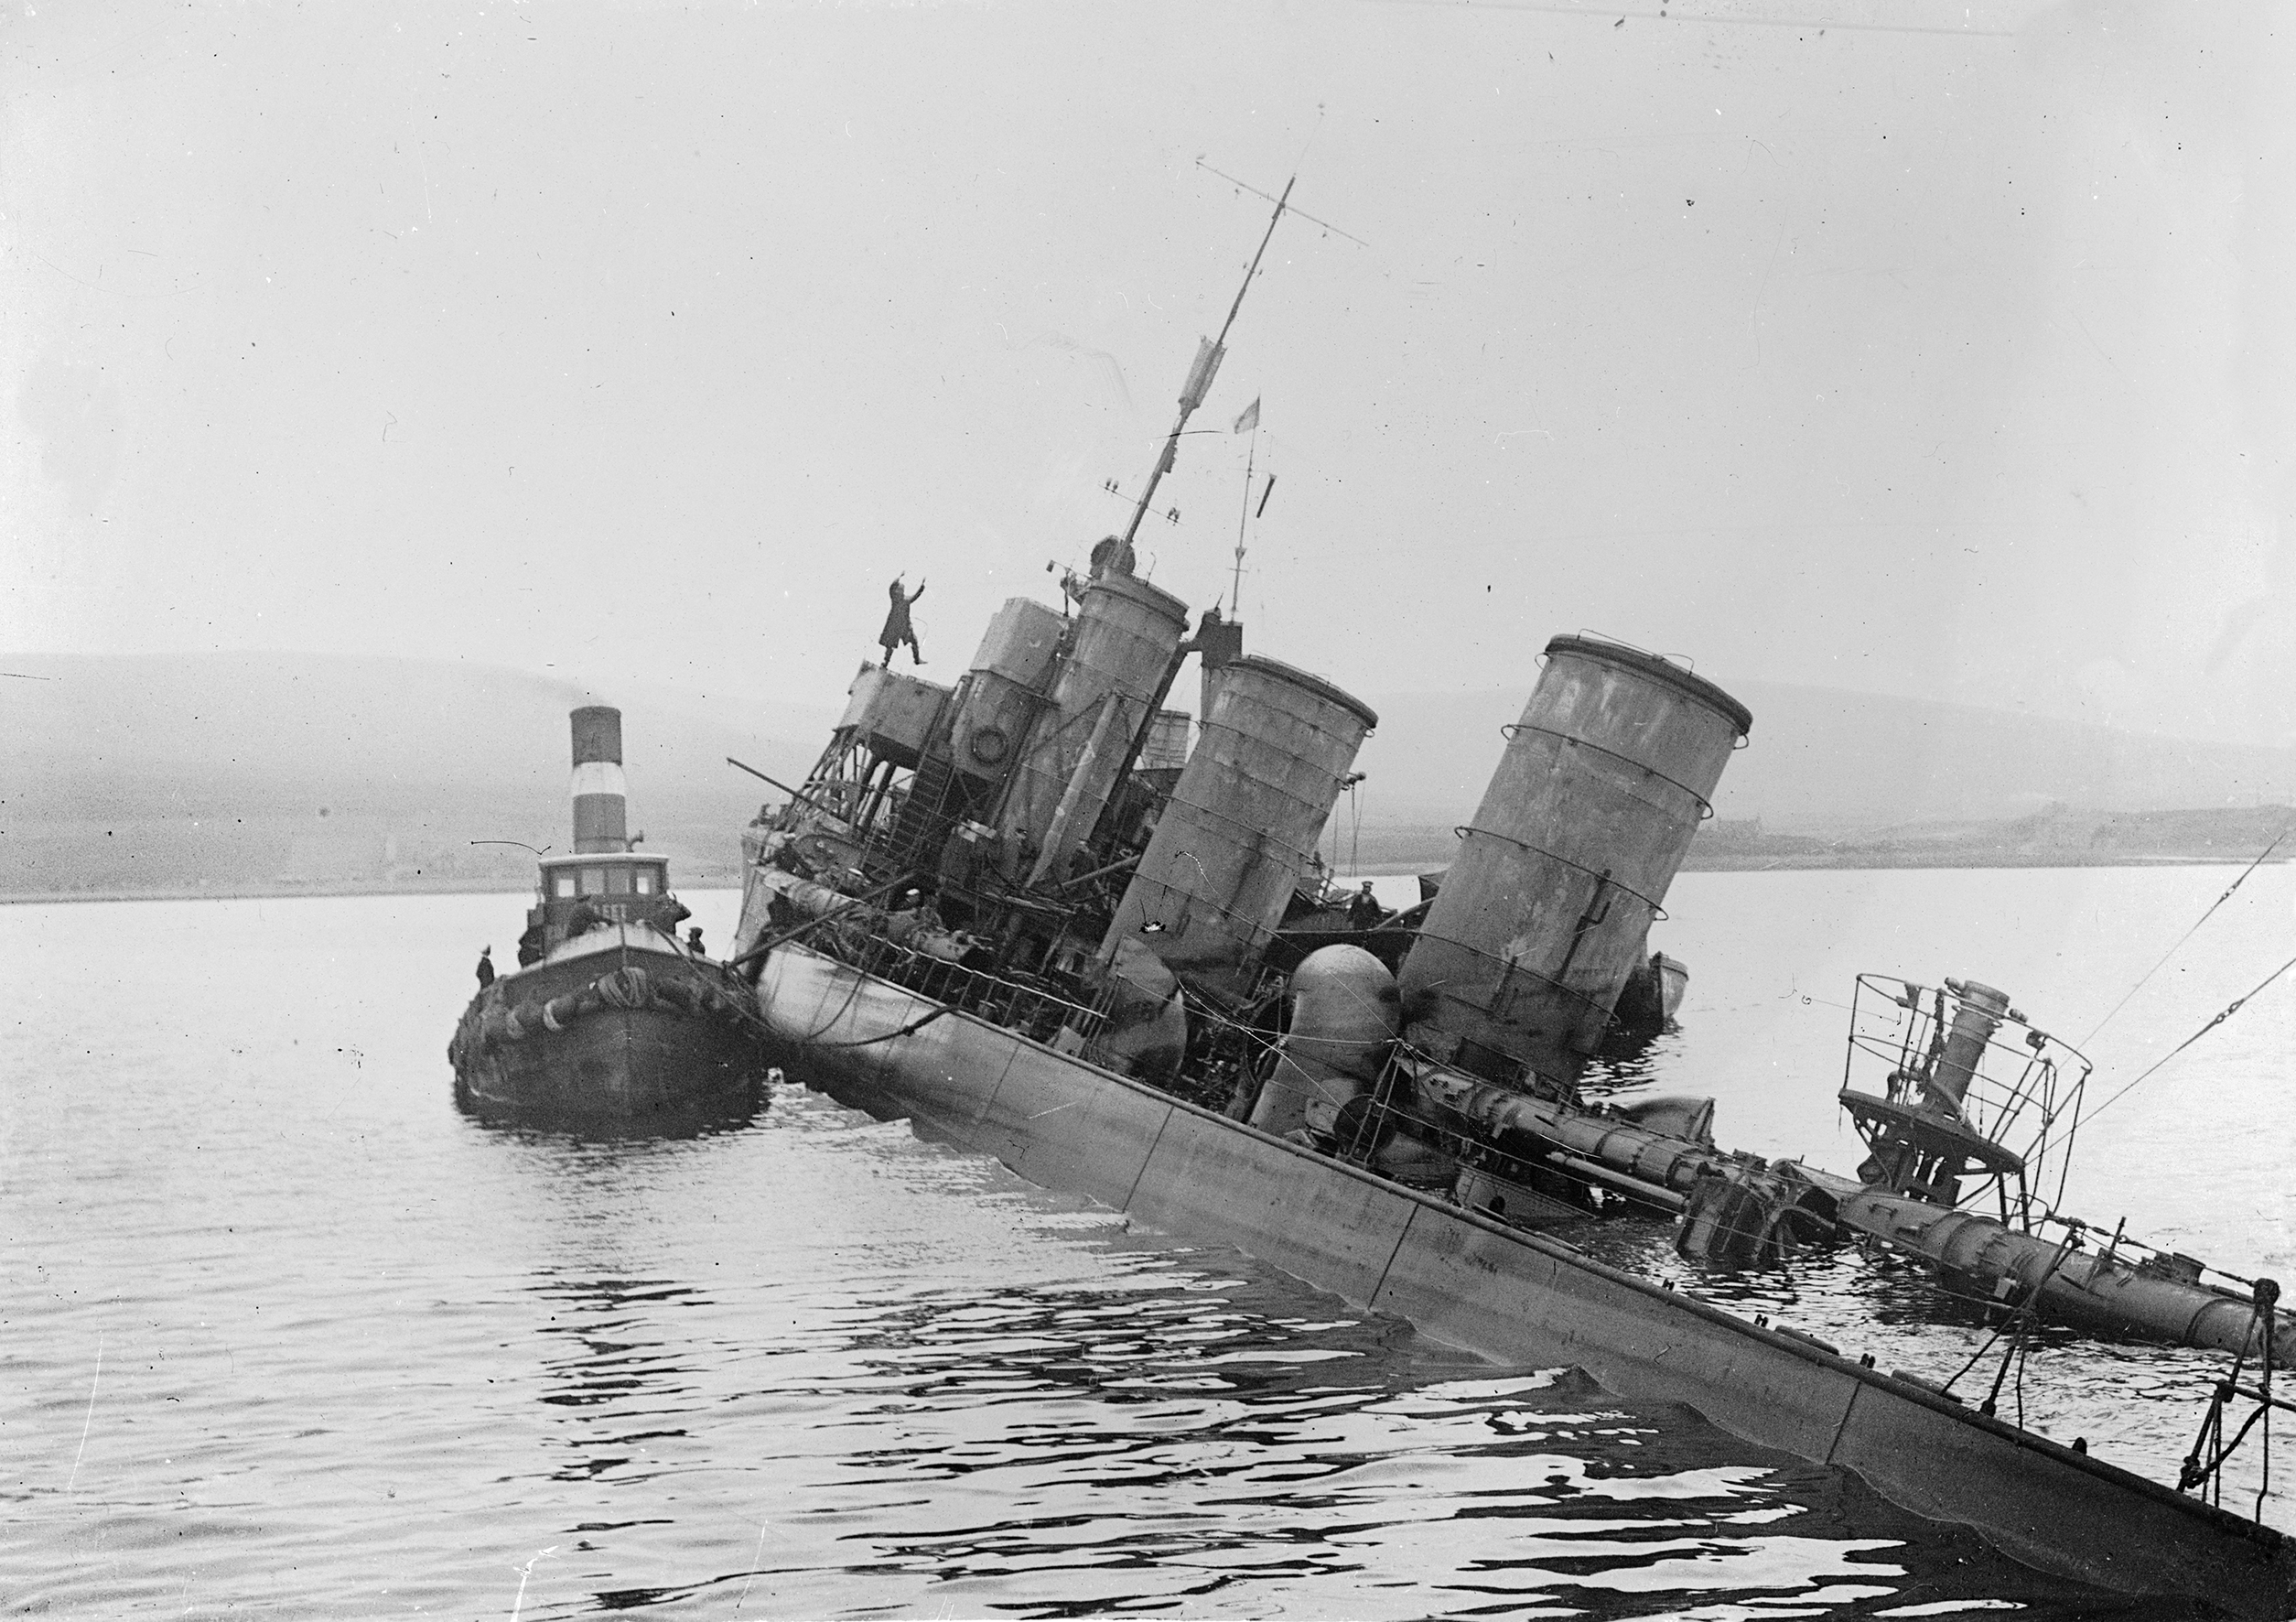 Tug alongside scuttled German destroyer G 102 at Scapa Flow